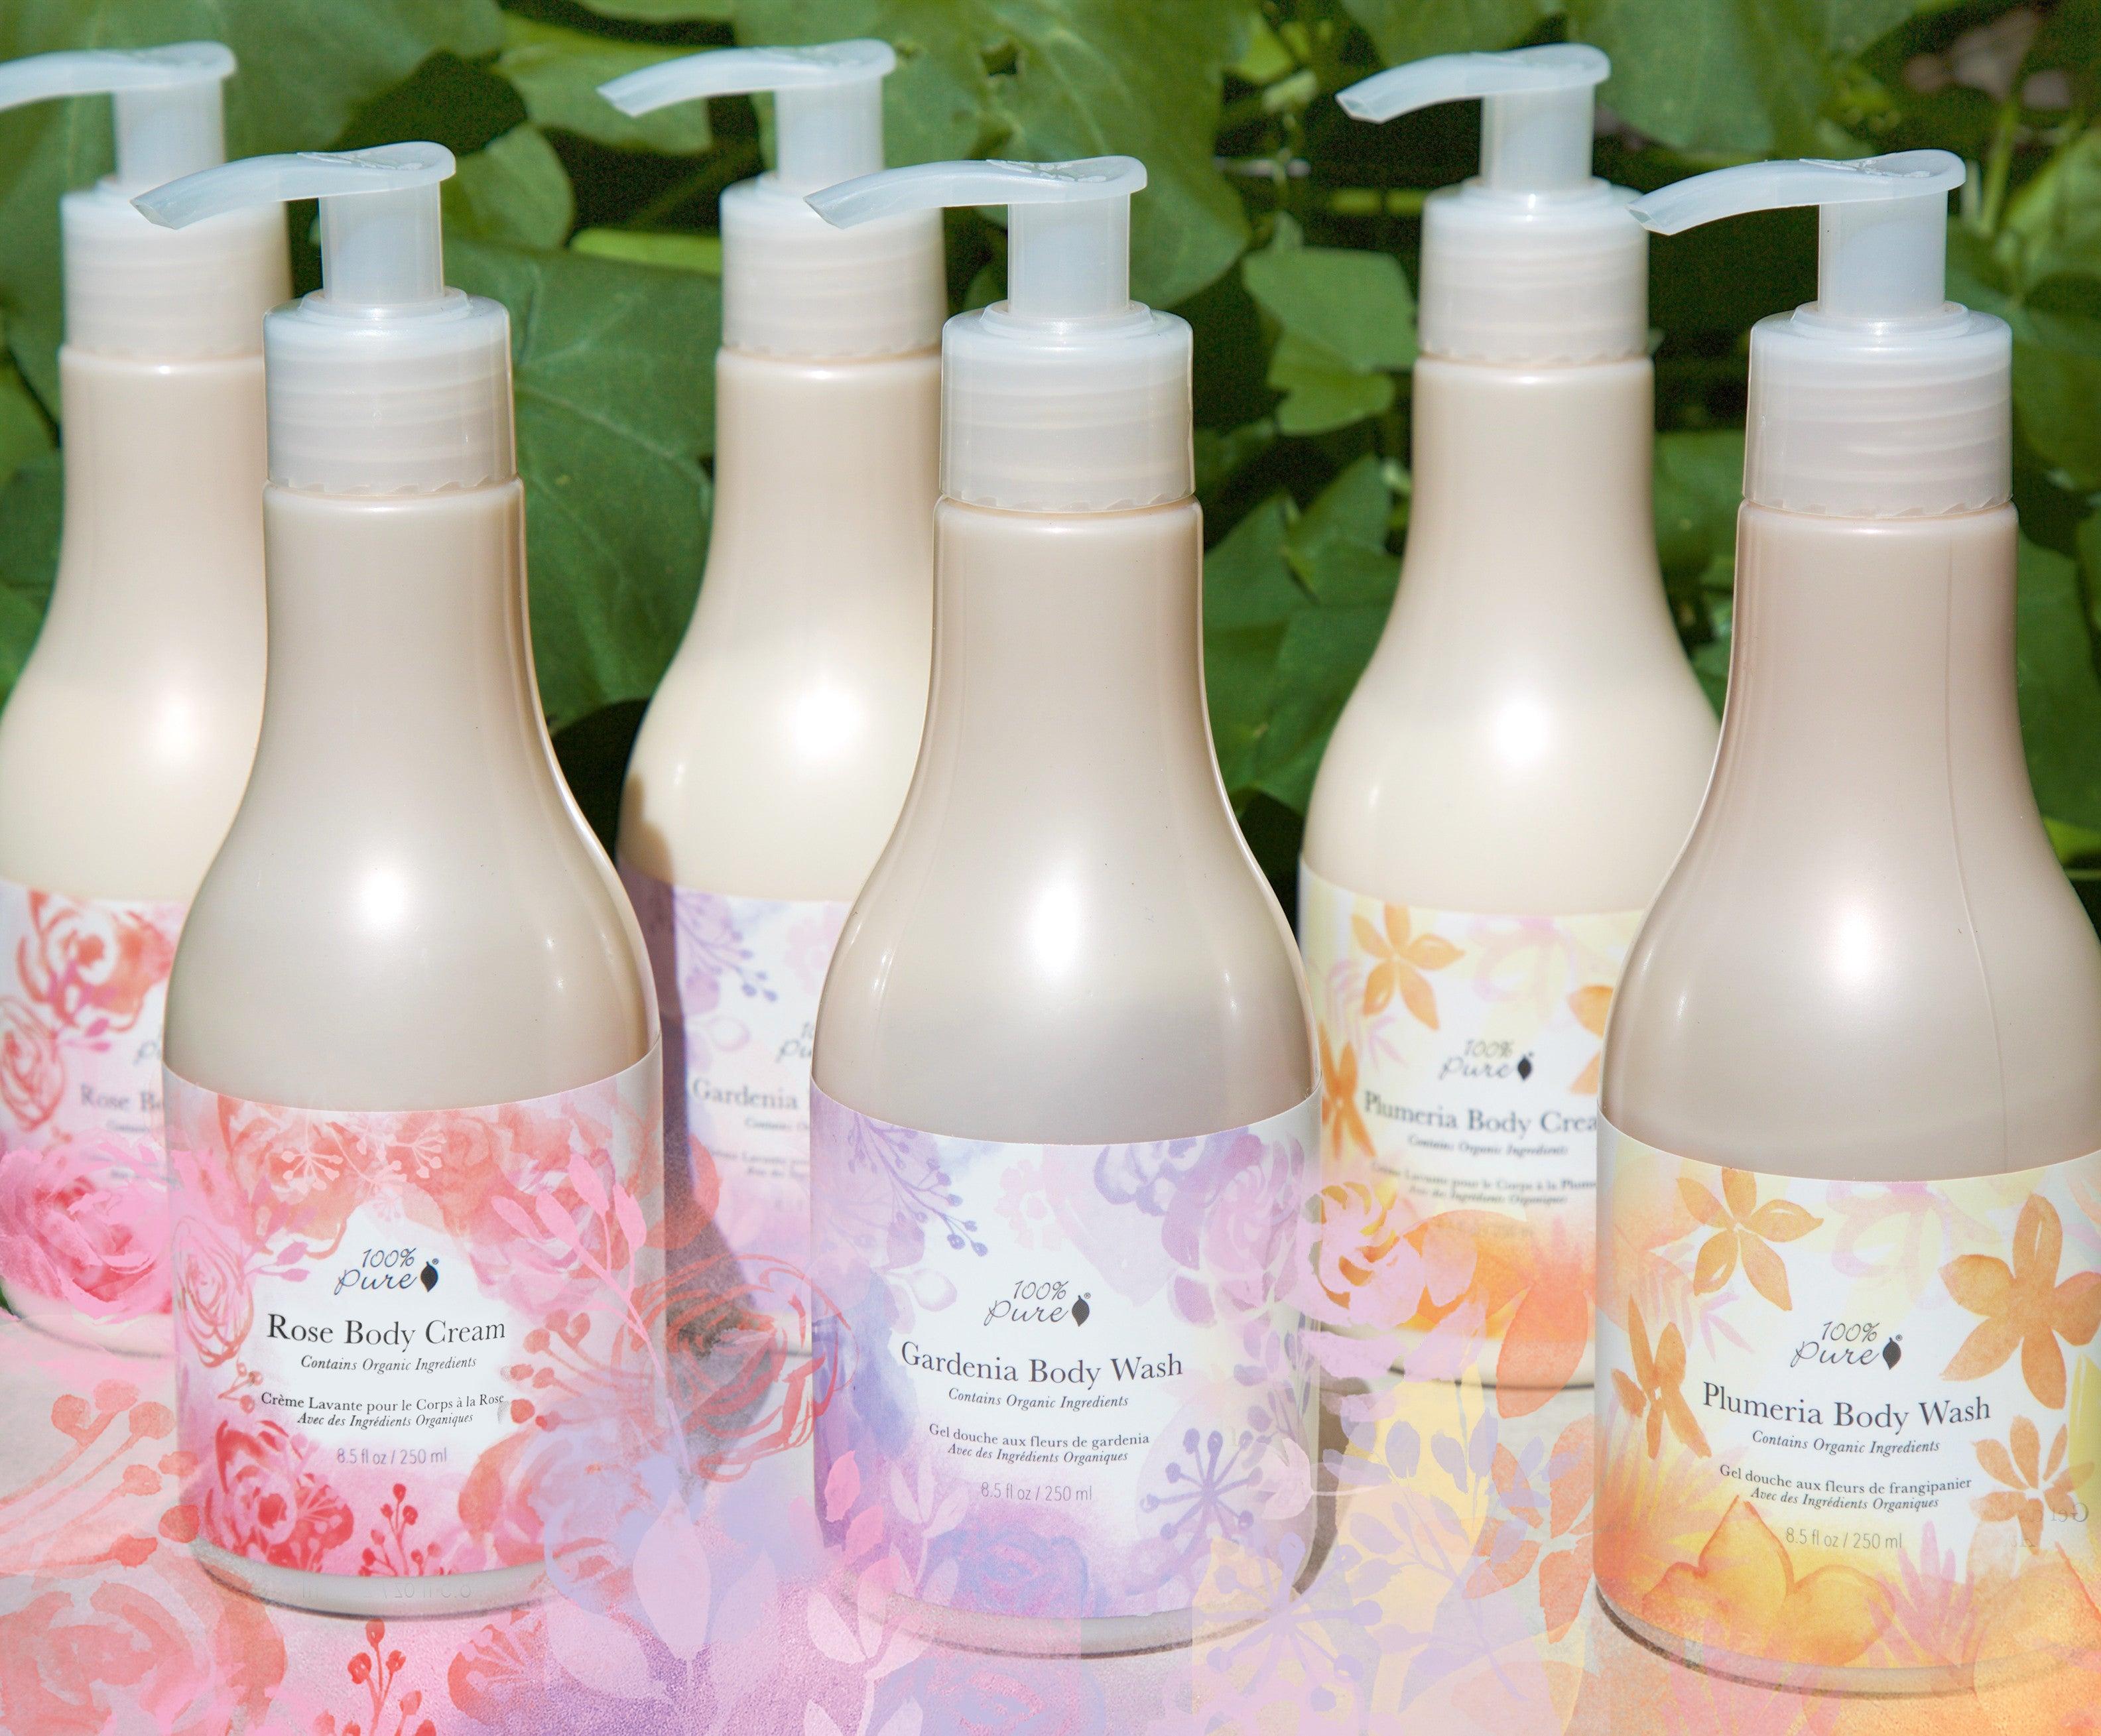 100% Pure Floral Body Collection